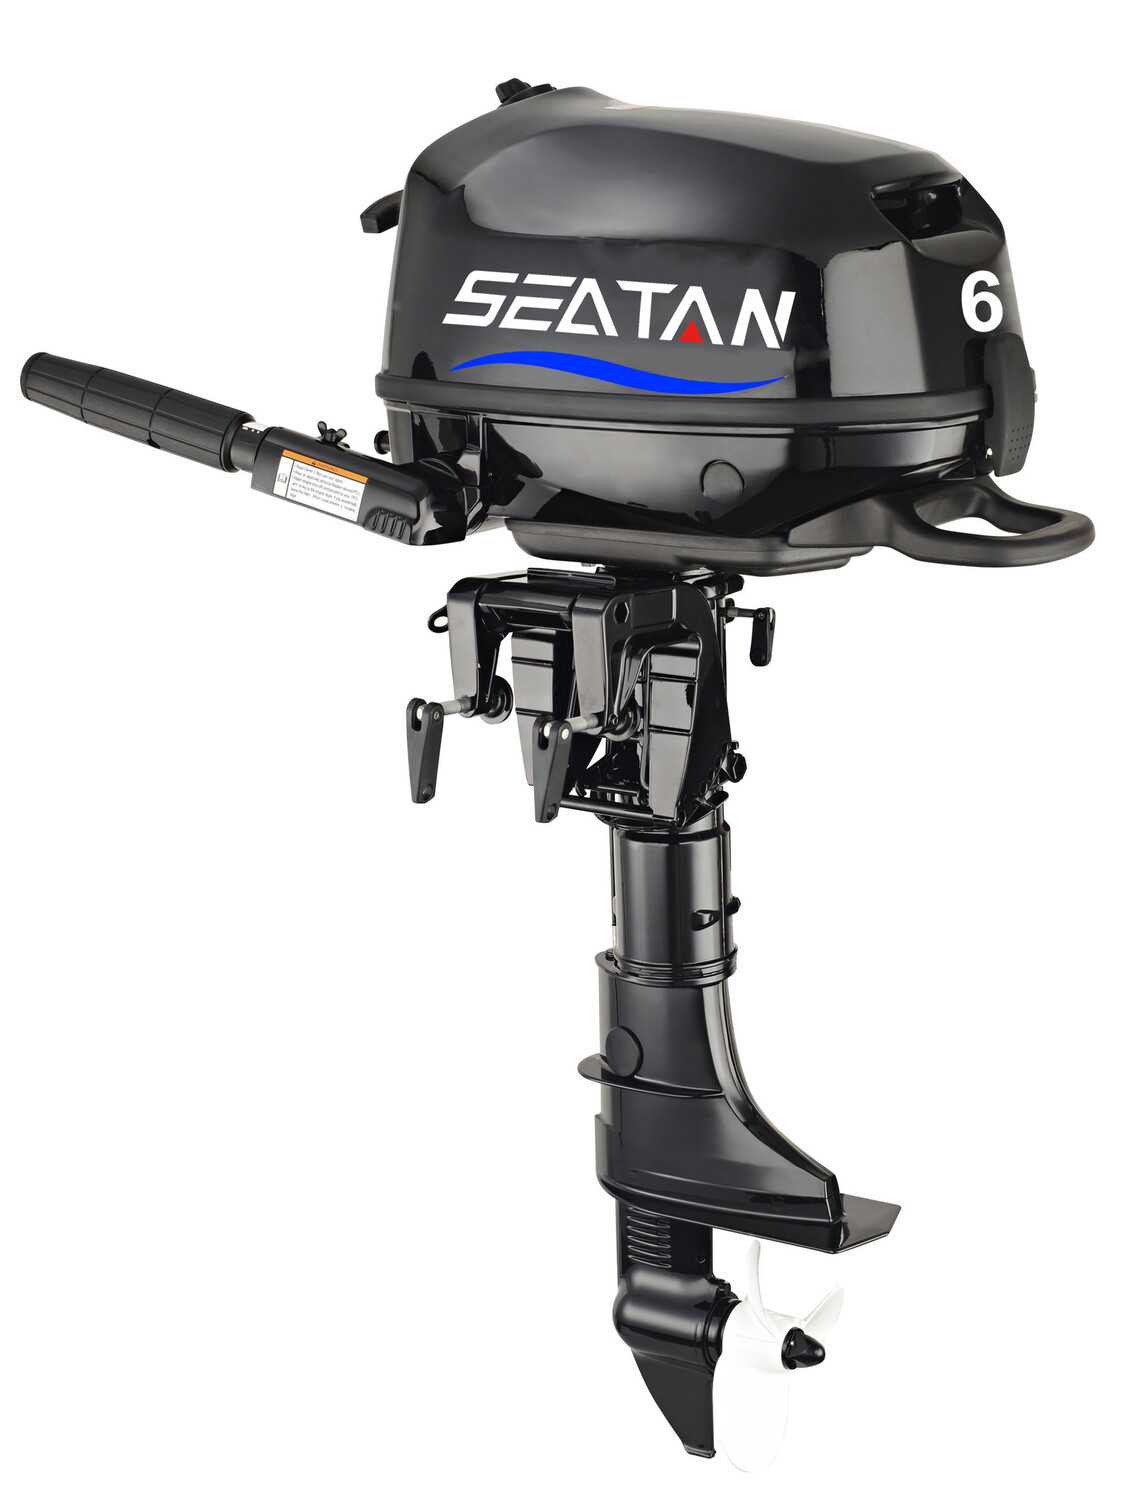 Seatan 6hp 4 Stoke Outboard Engine